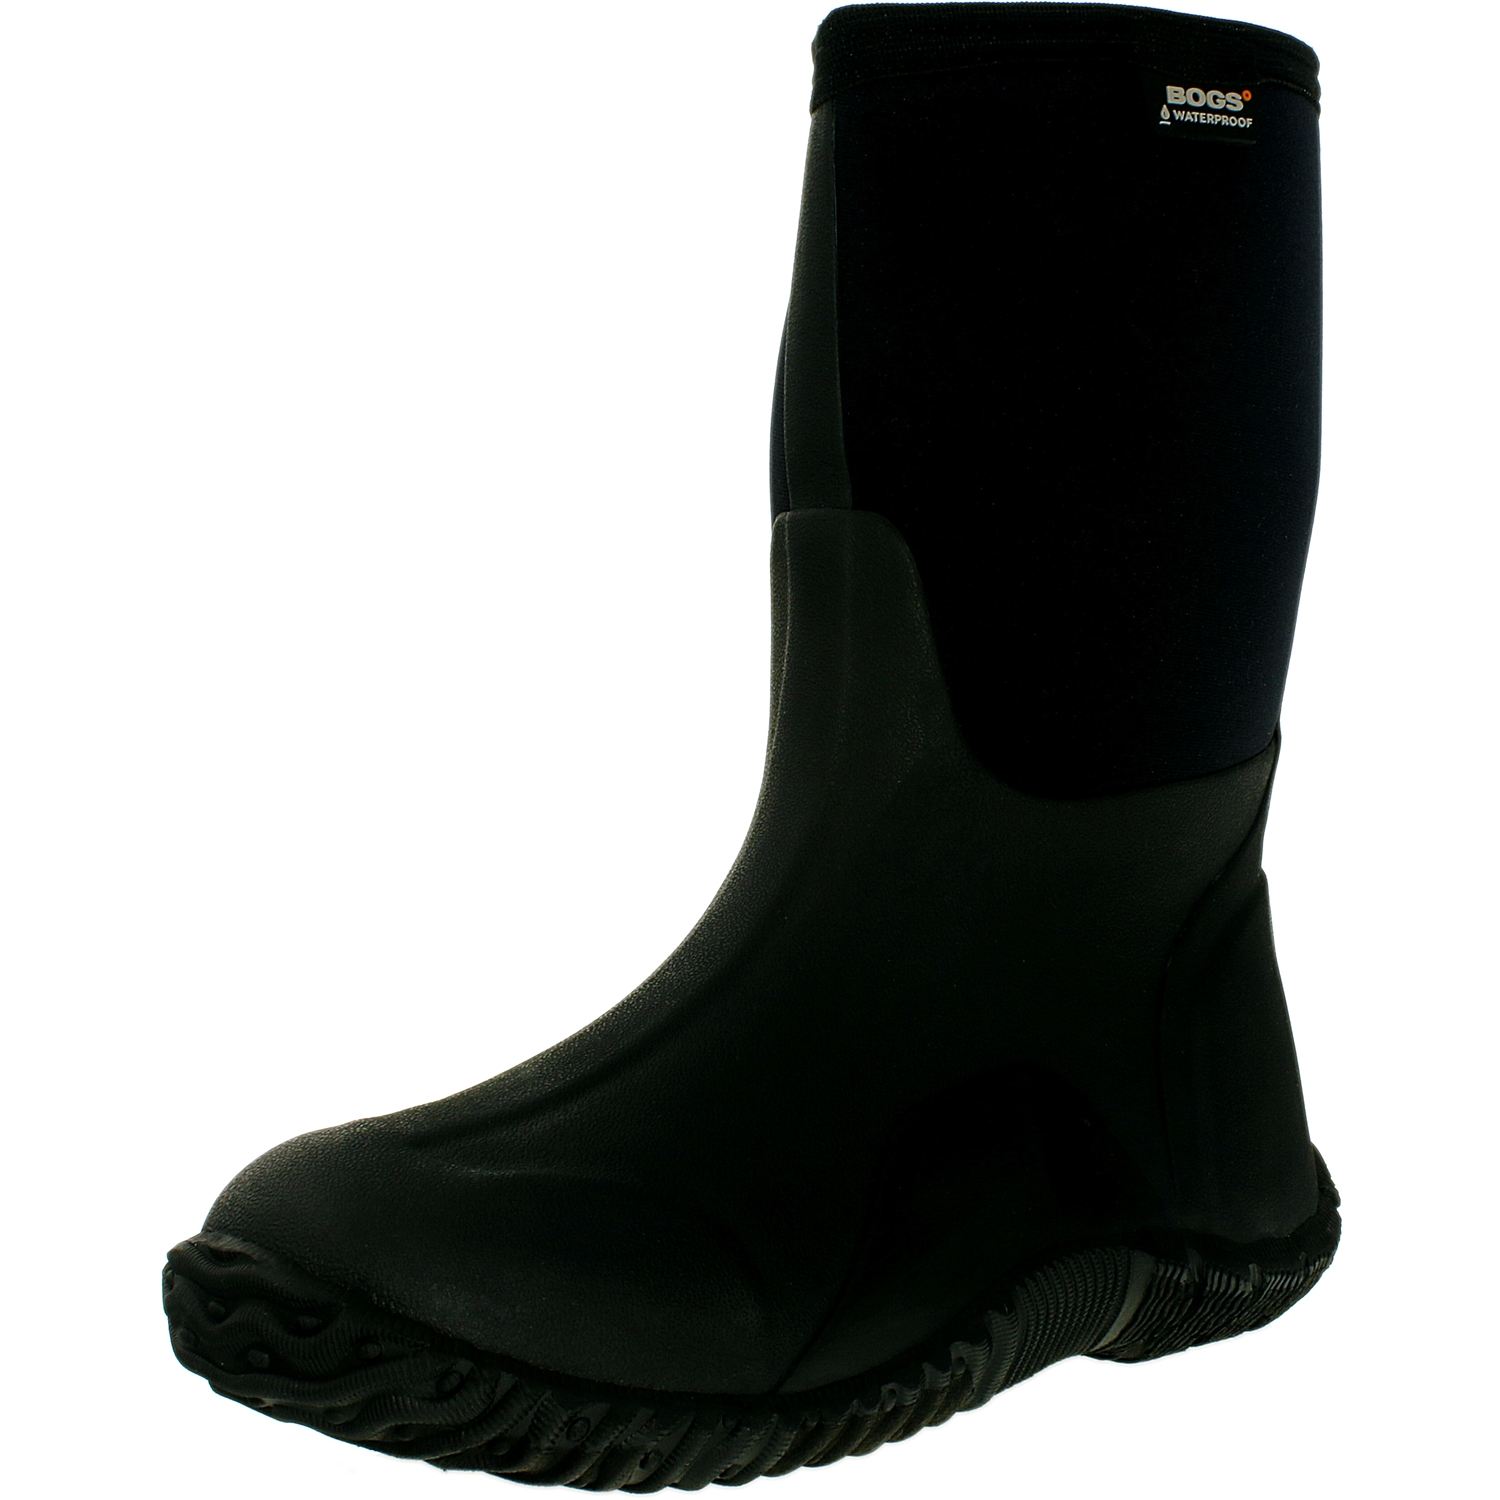 Bogs Boy's Classic High Black Ankle-High Fabric Rain Boot 7M by Bogs